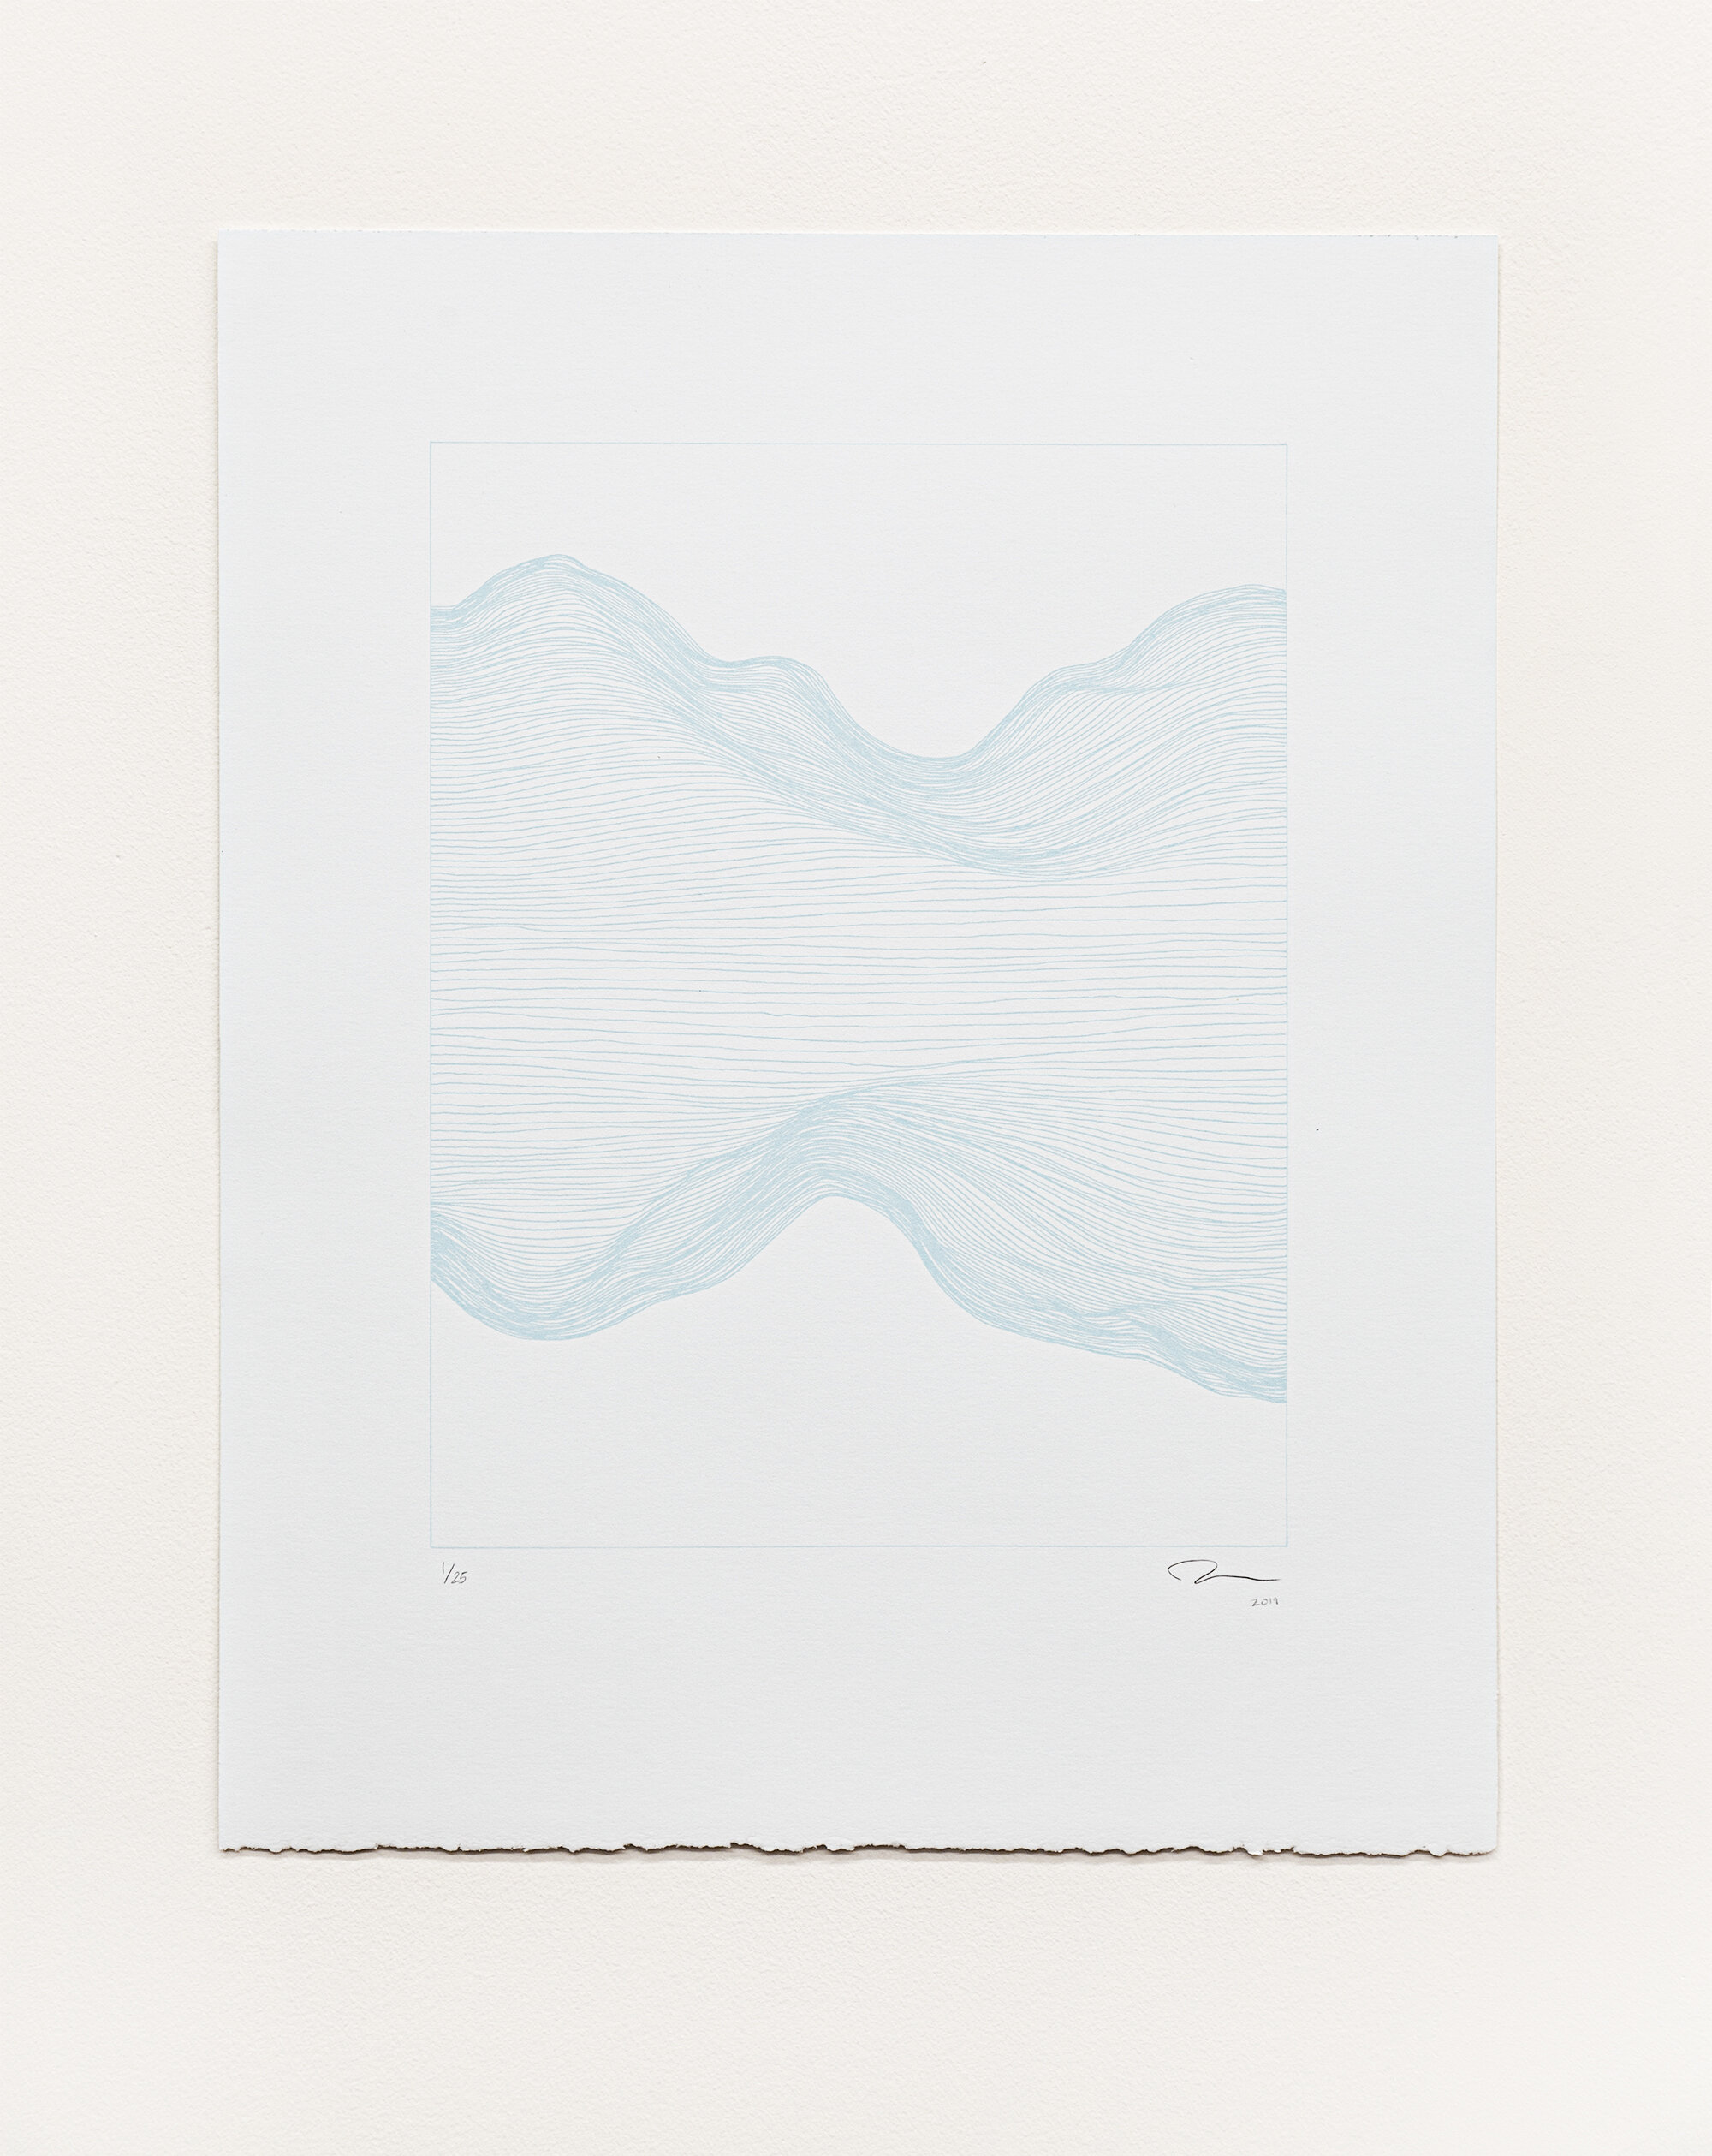 MimiJung_Live_Edge_Form_Drawing_Print_On_Paper_92419_2.jpg